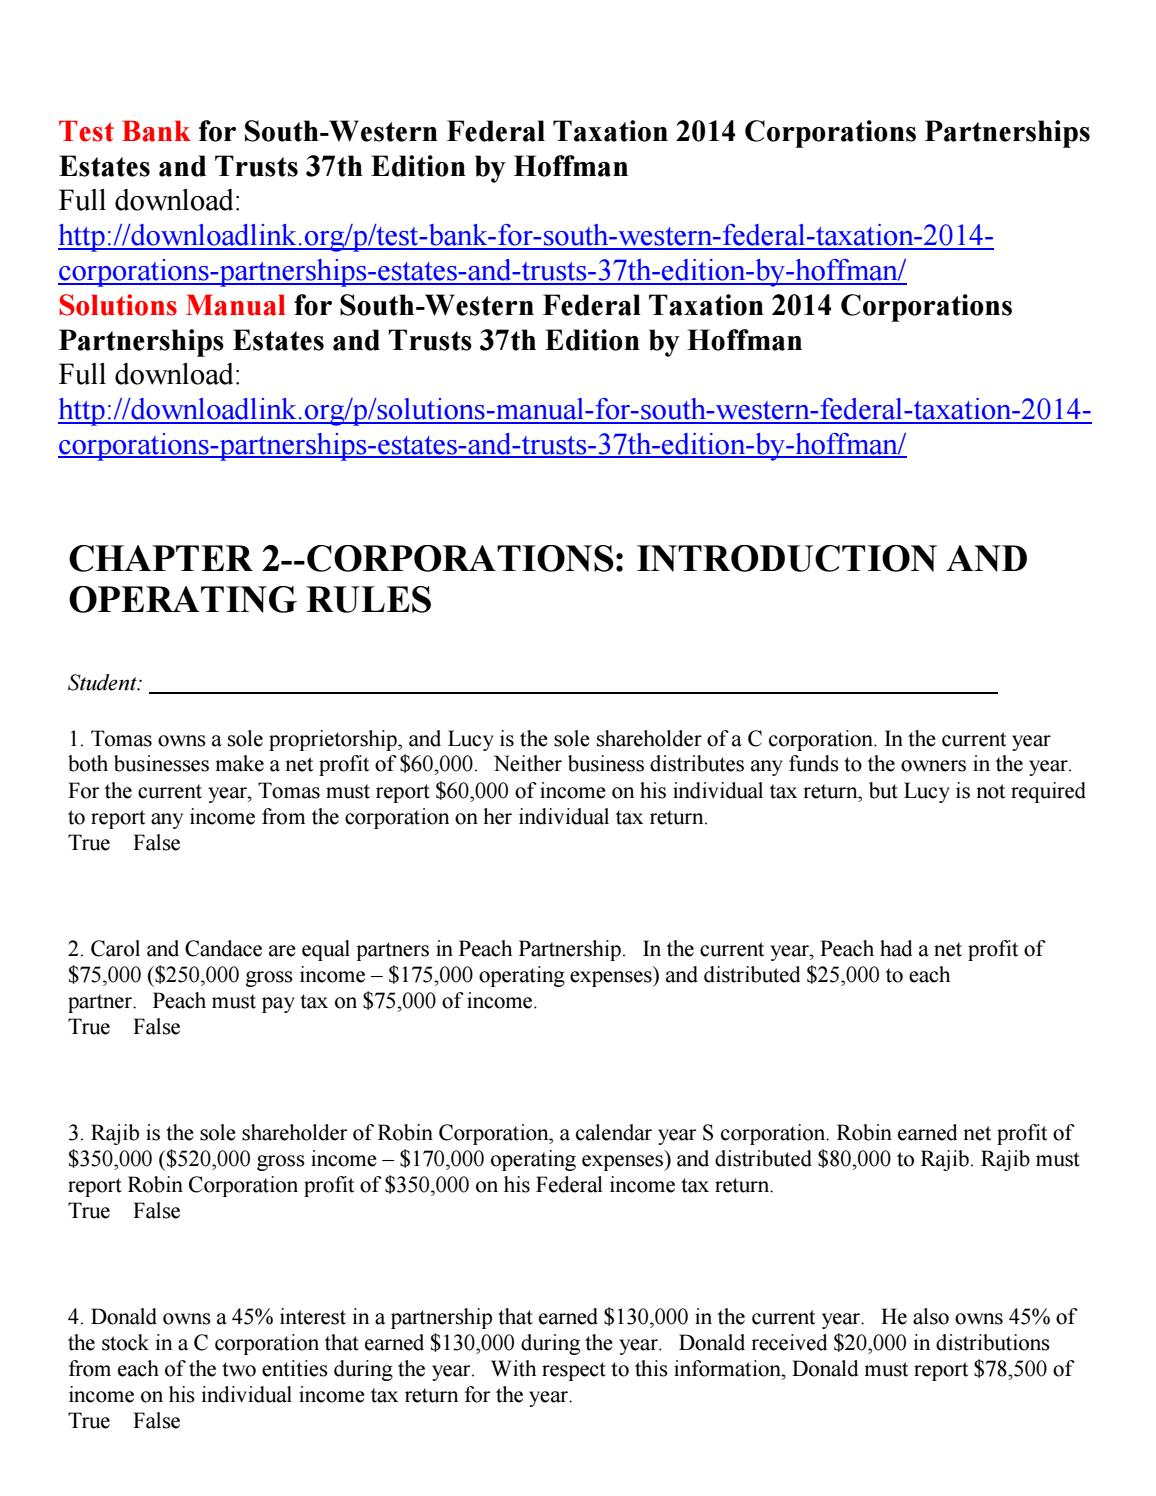 Test Bank For South Western Federal Taxation 2014 with Emerald Corporation A Calendar Year C Corporation